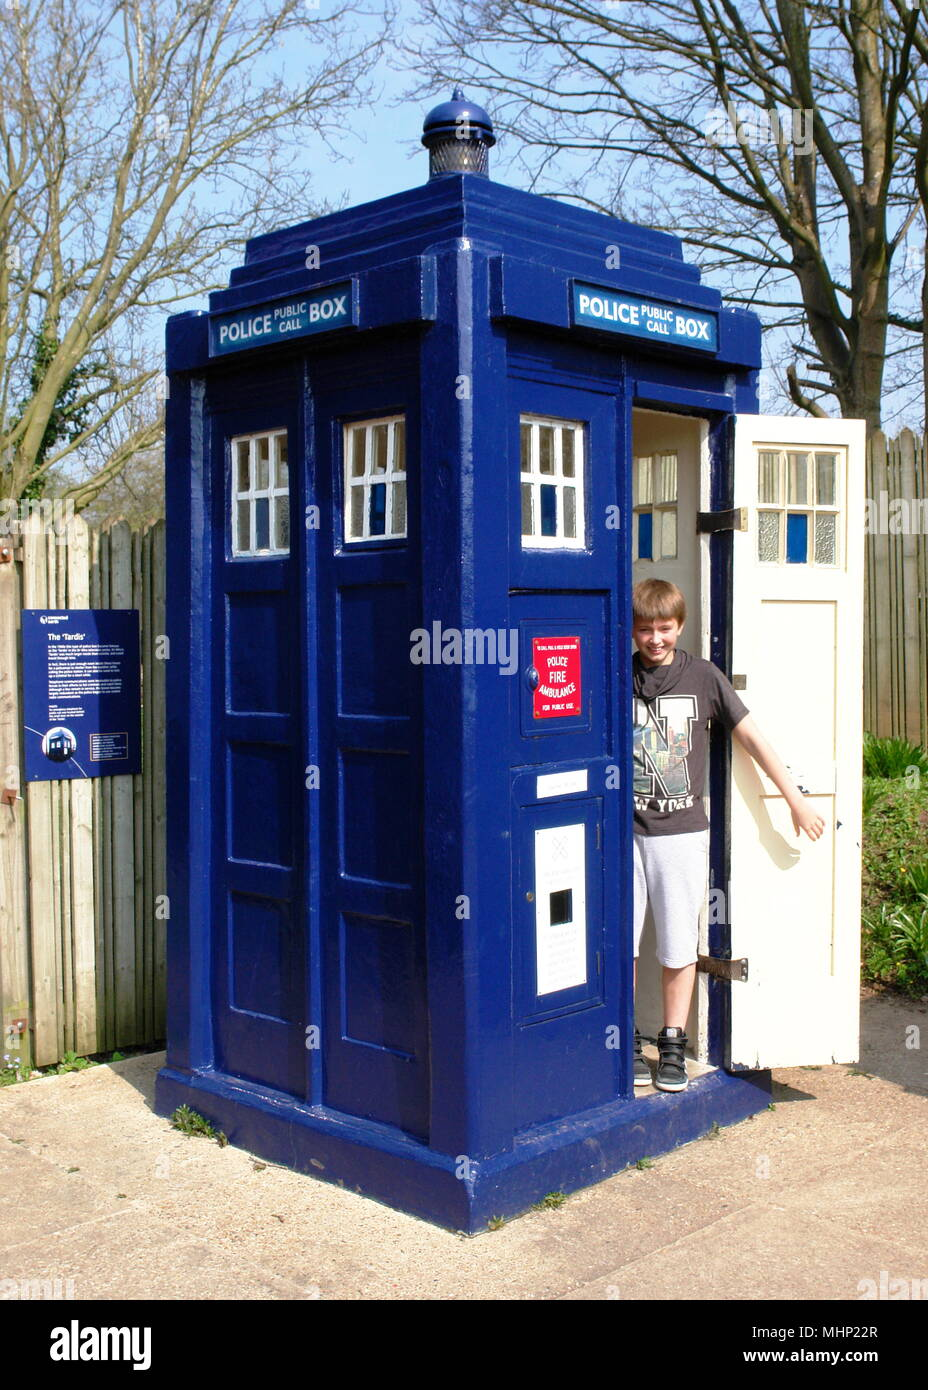 A smiling boy stands in the open doorway of a Tardis police box (as seen in the popular TV series, Doctor Who) at the Avoncroft Museum of Buildings, near Bromsgrove, Worcestershire.     Date: 2010s - Stock Image